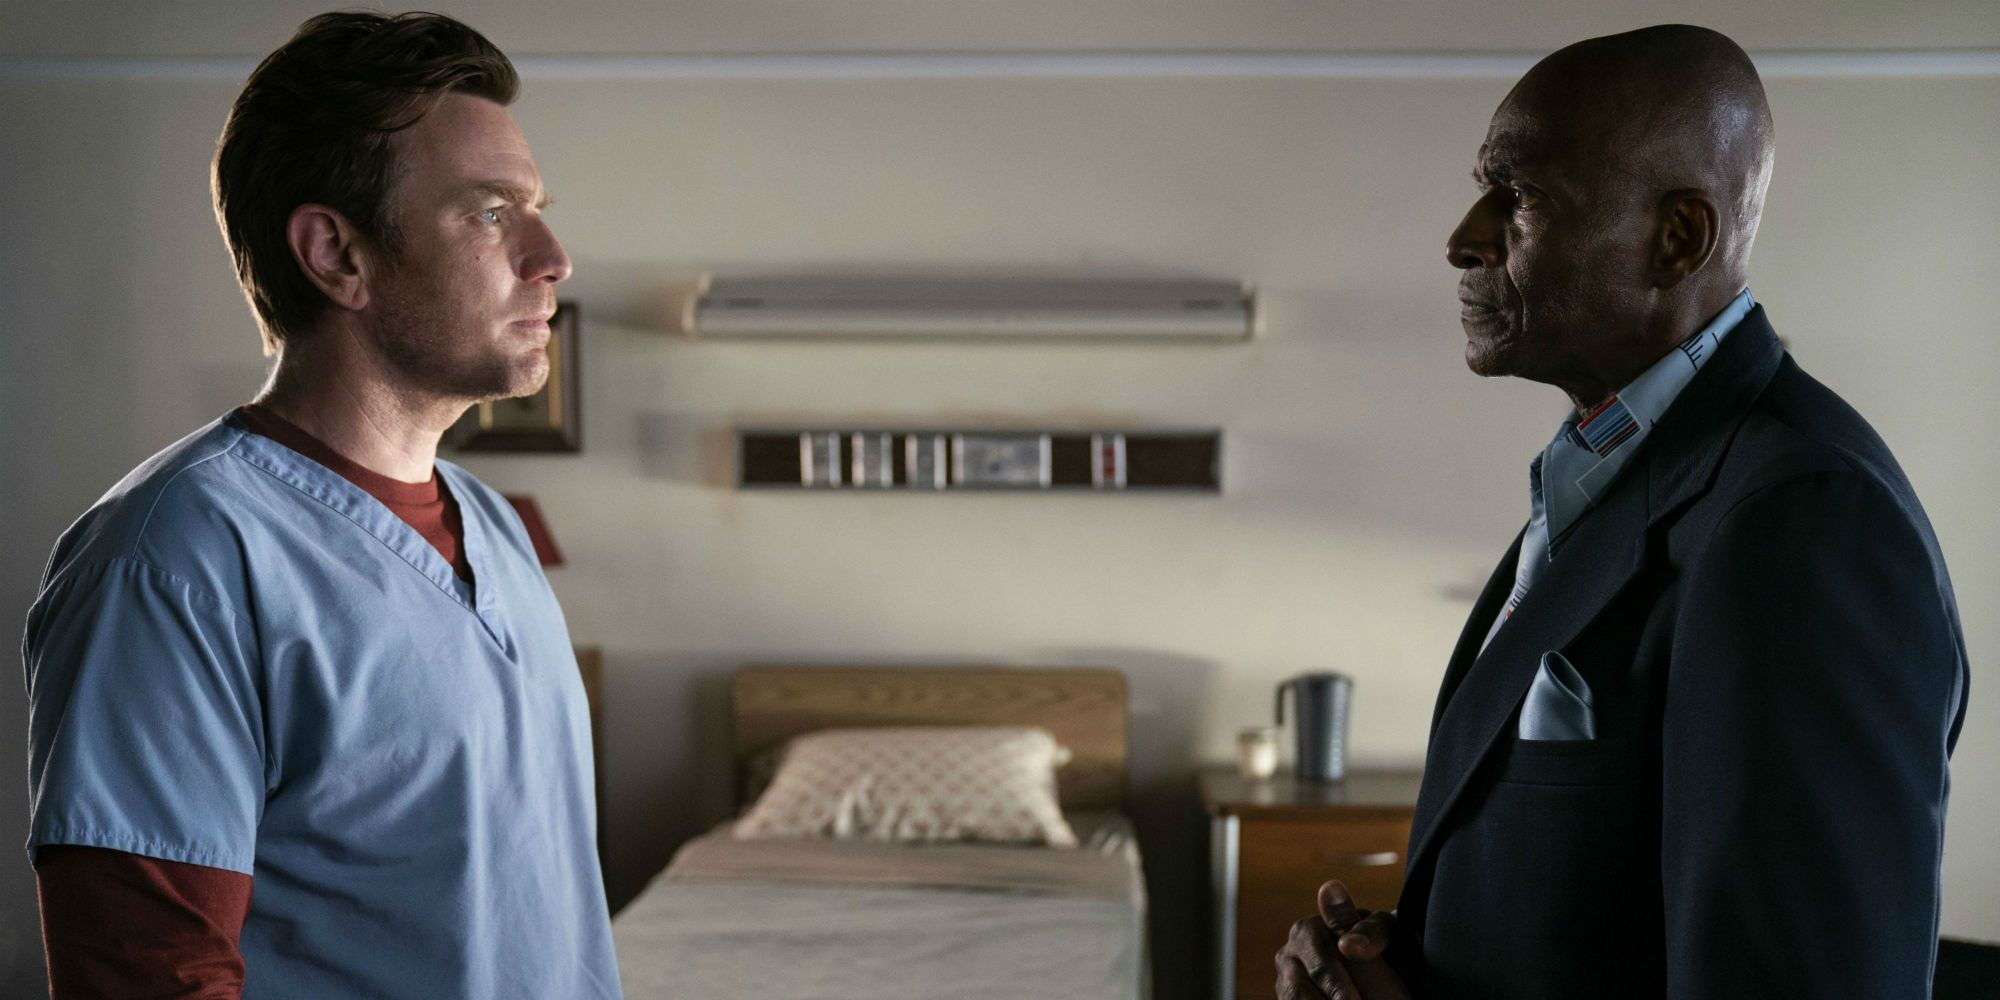 Doctor Sleep Box Office: The Shining Sequel Didn't Deserve To Bomb